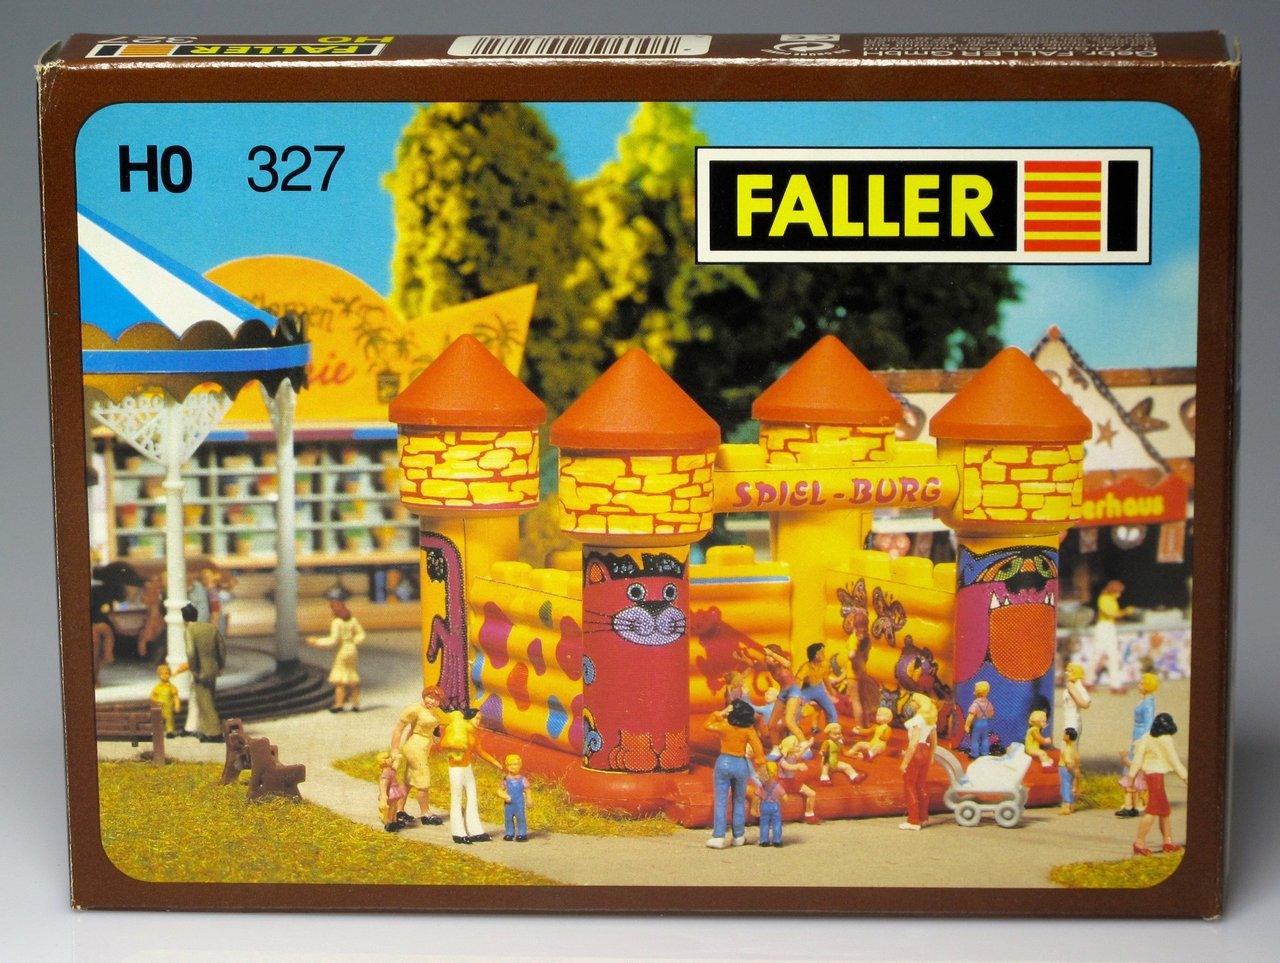 FALLER 327 Castillo Hinchable